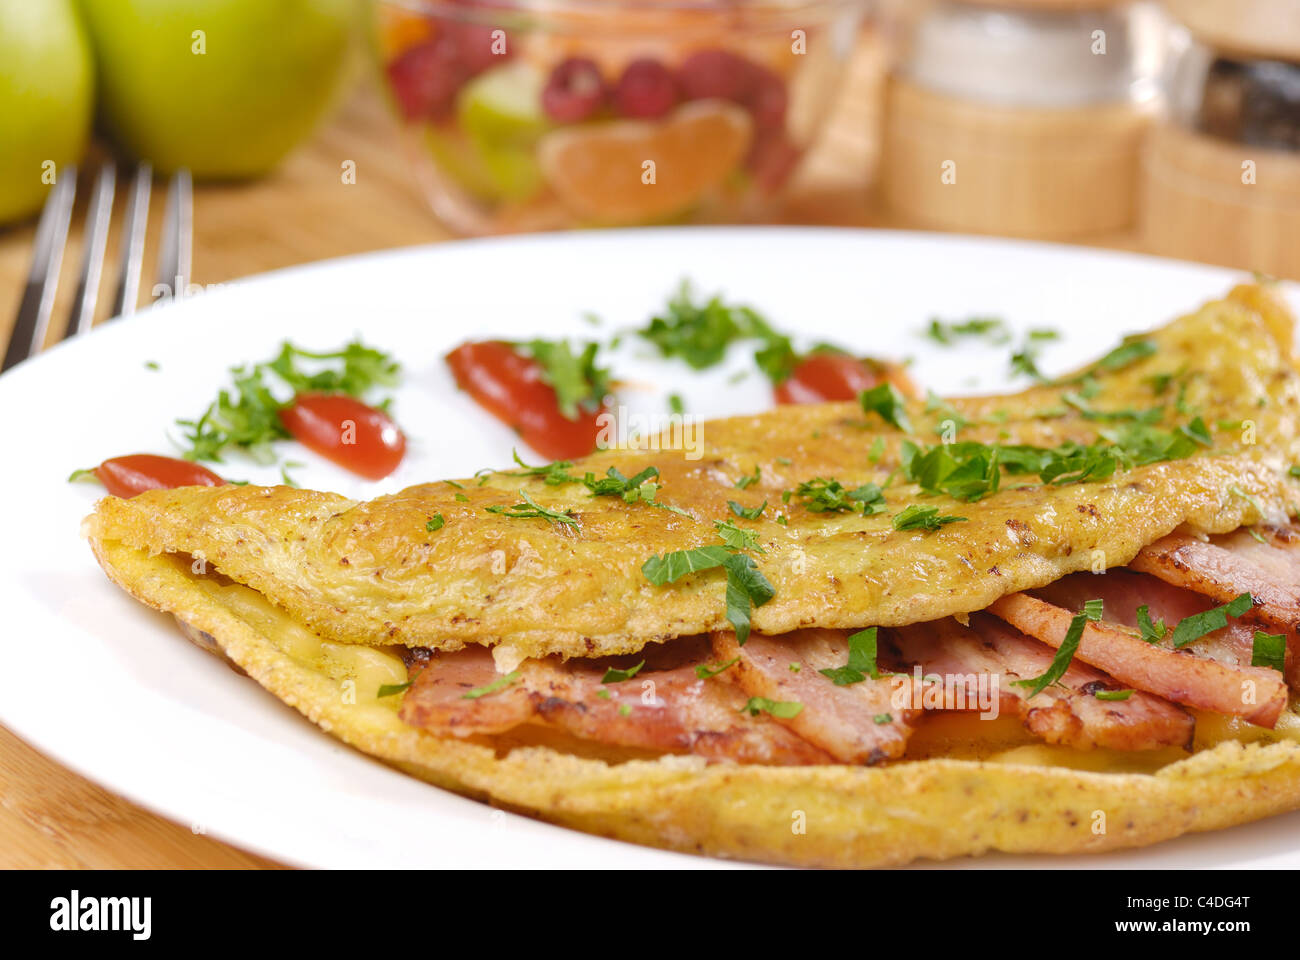 Omelet with bacon served on white plate - Stock Image